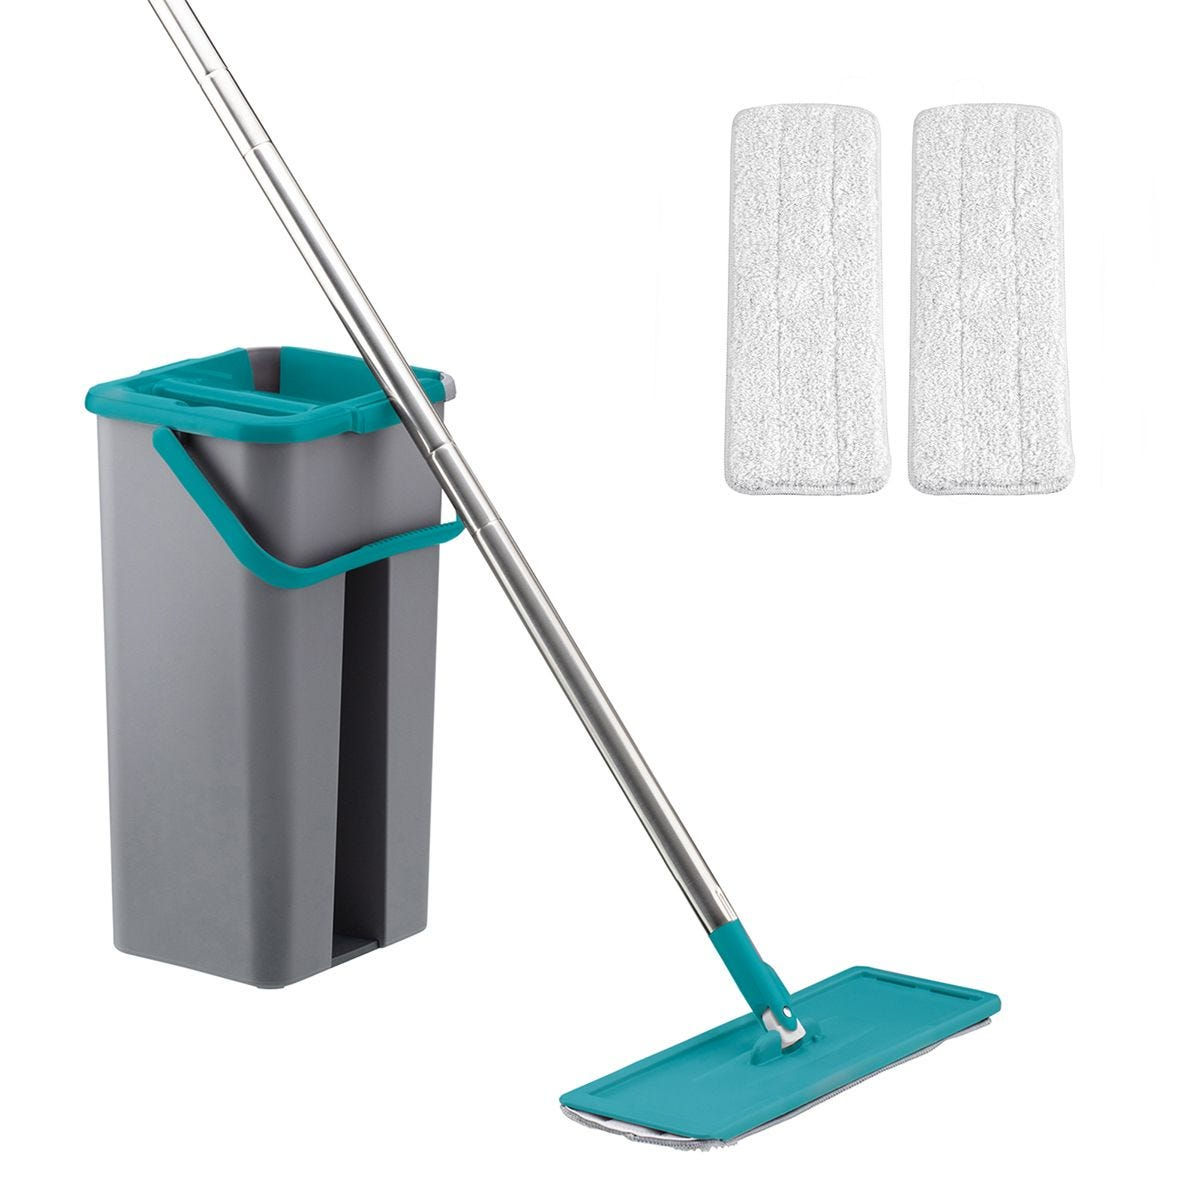 Easy Clean Flat Mop & Bucket - Turquoise